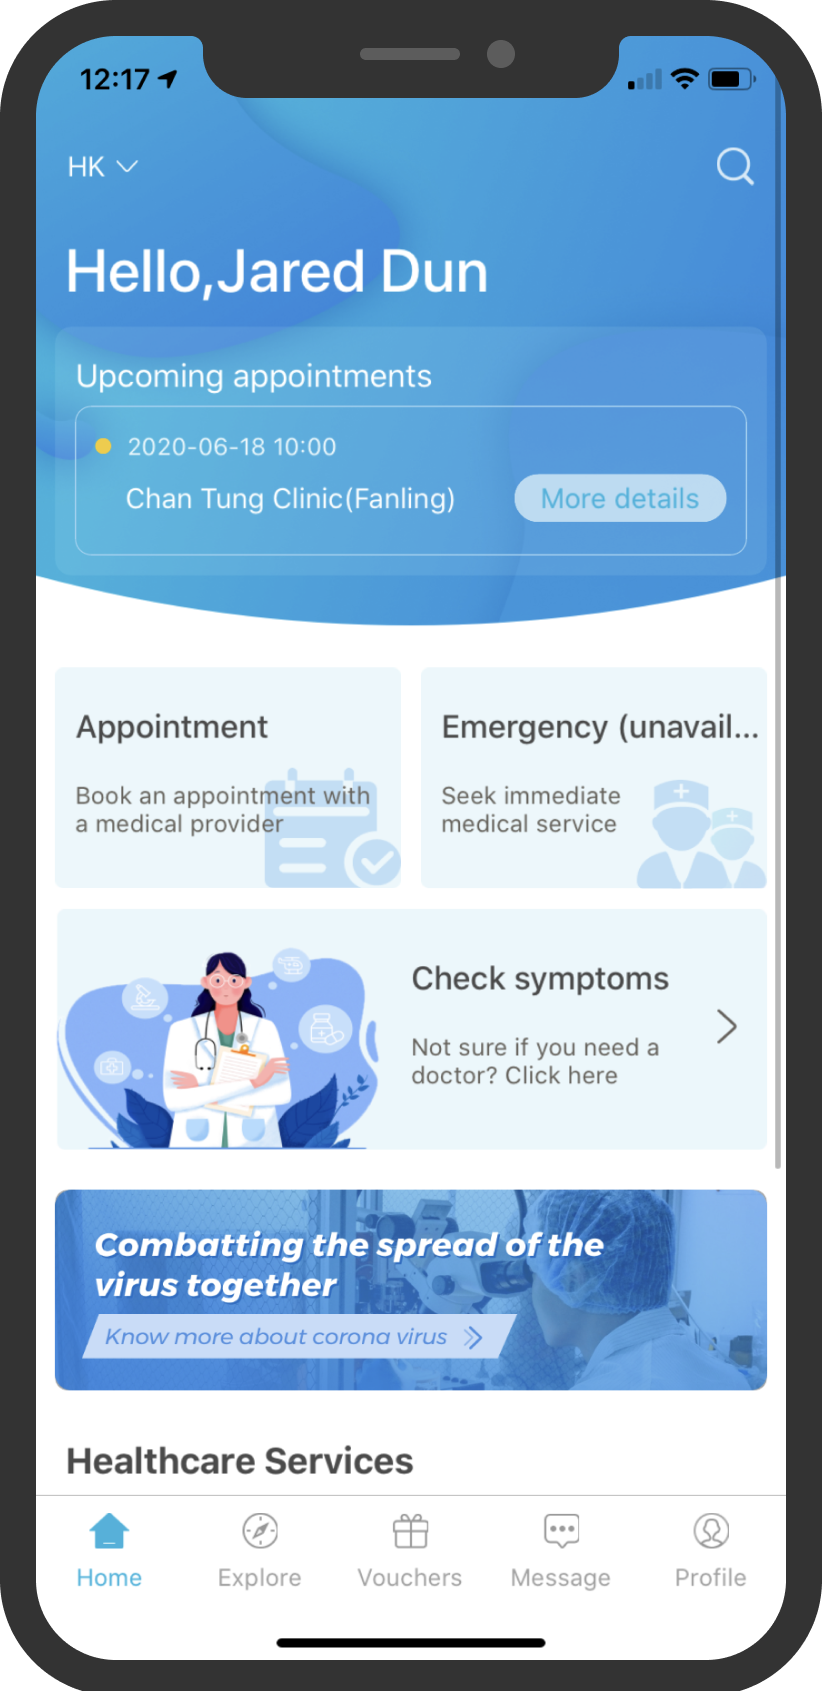 Insurance mobile app home screen shows appointment, symptom checker and healthcare services